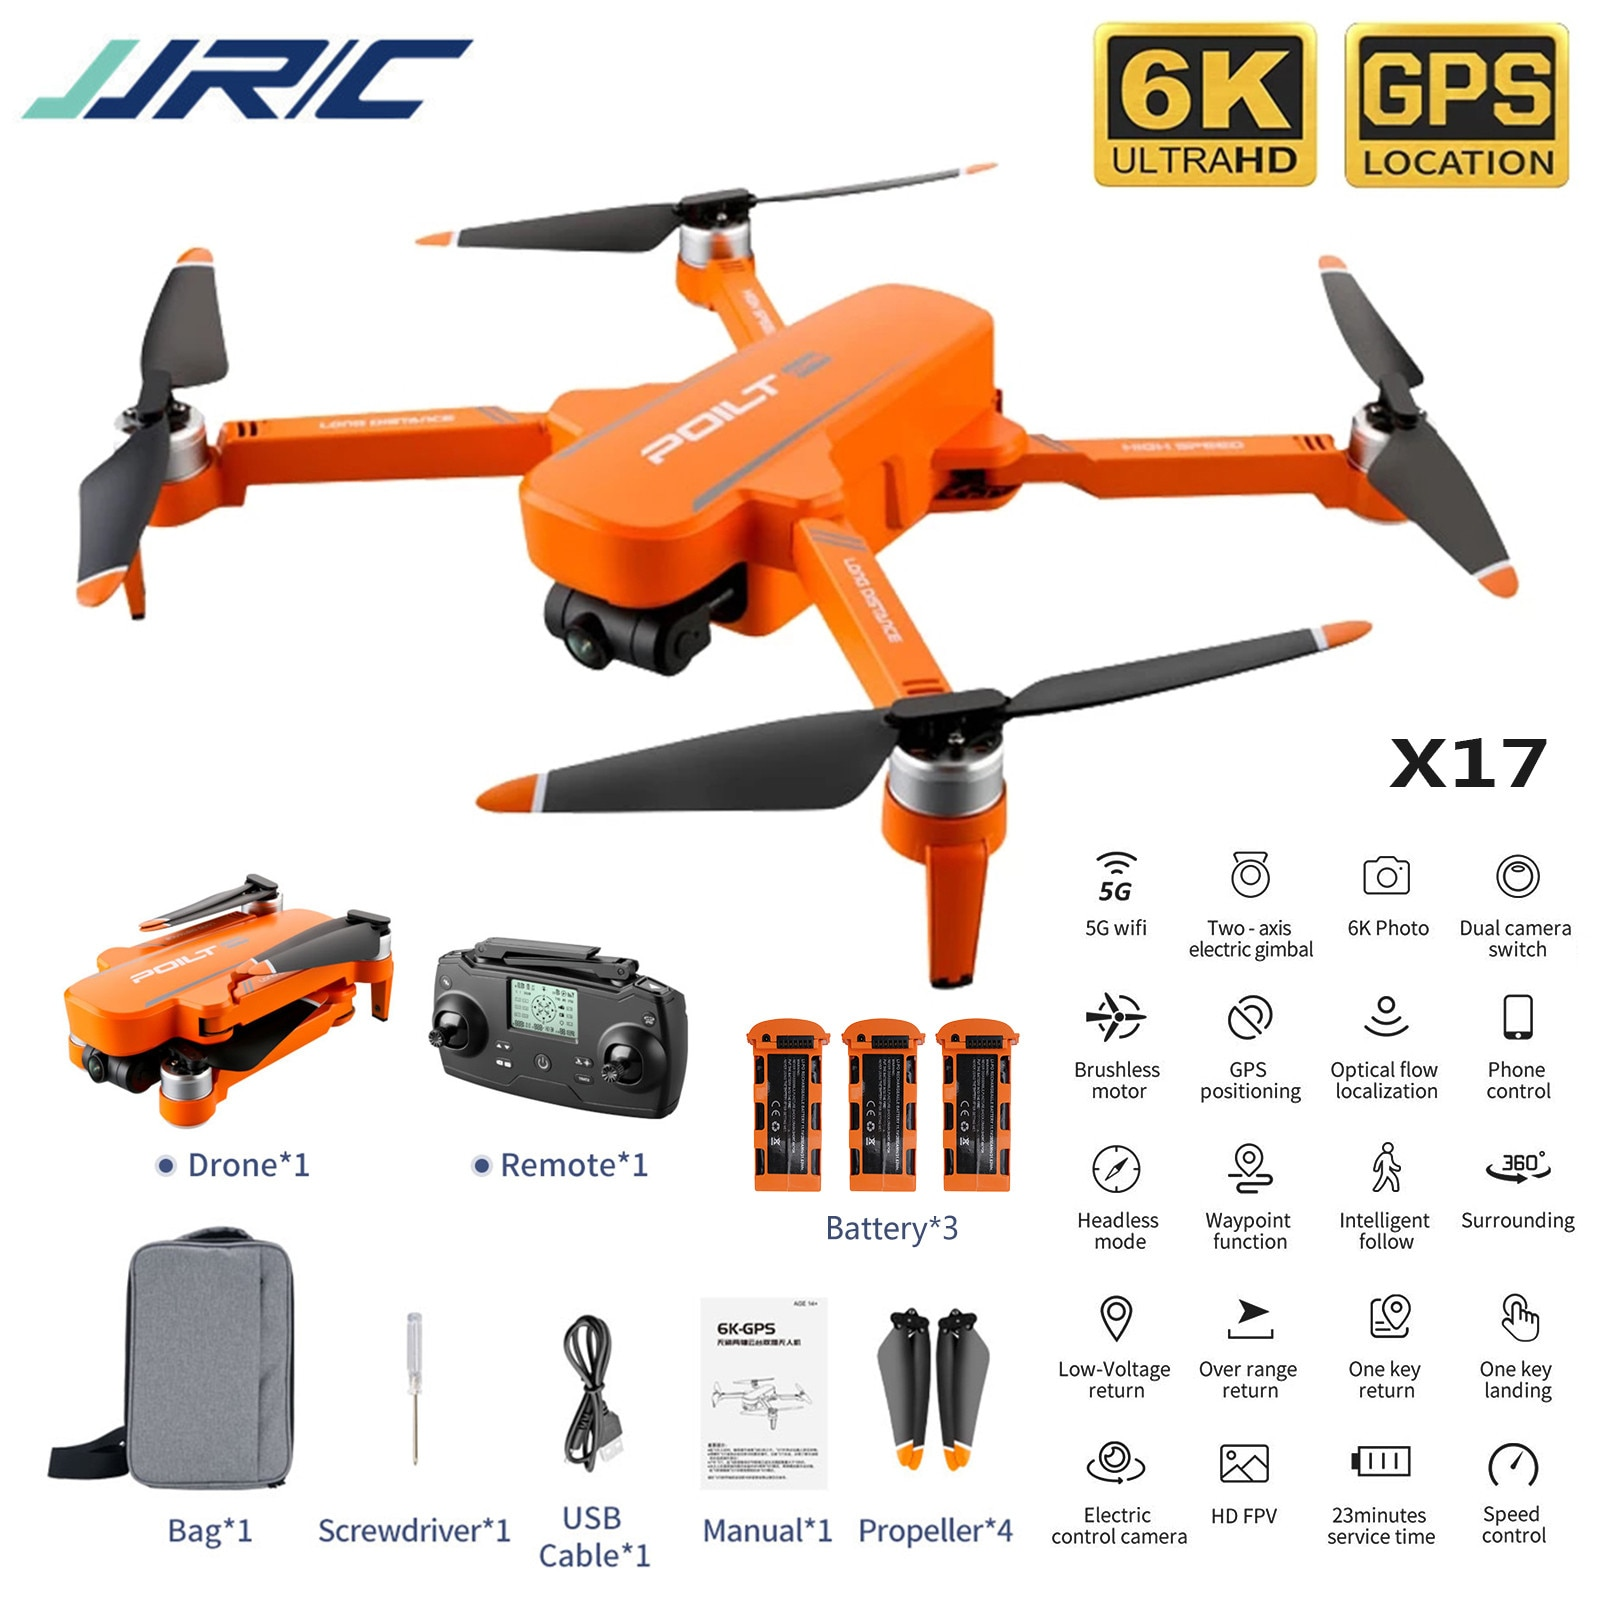 Jjr/c X17 6k-gps Brushless Two-axis Gimbal Dual Camera Drone 1km Long-distance 30min Professional Drone 5g Foldable Quadcopter